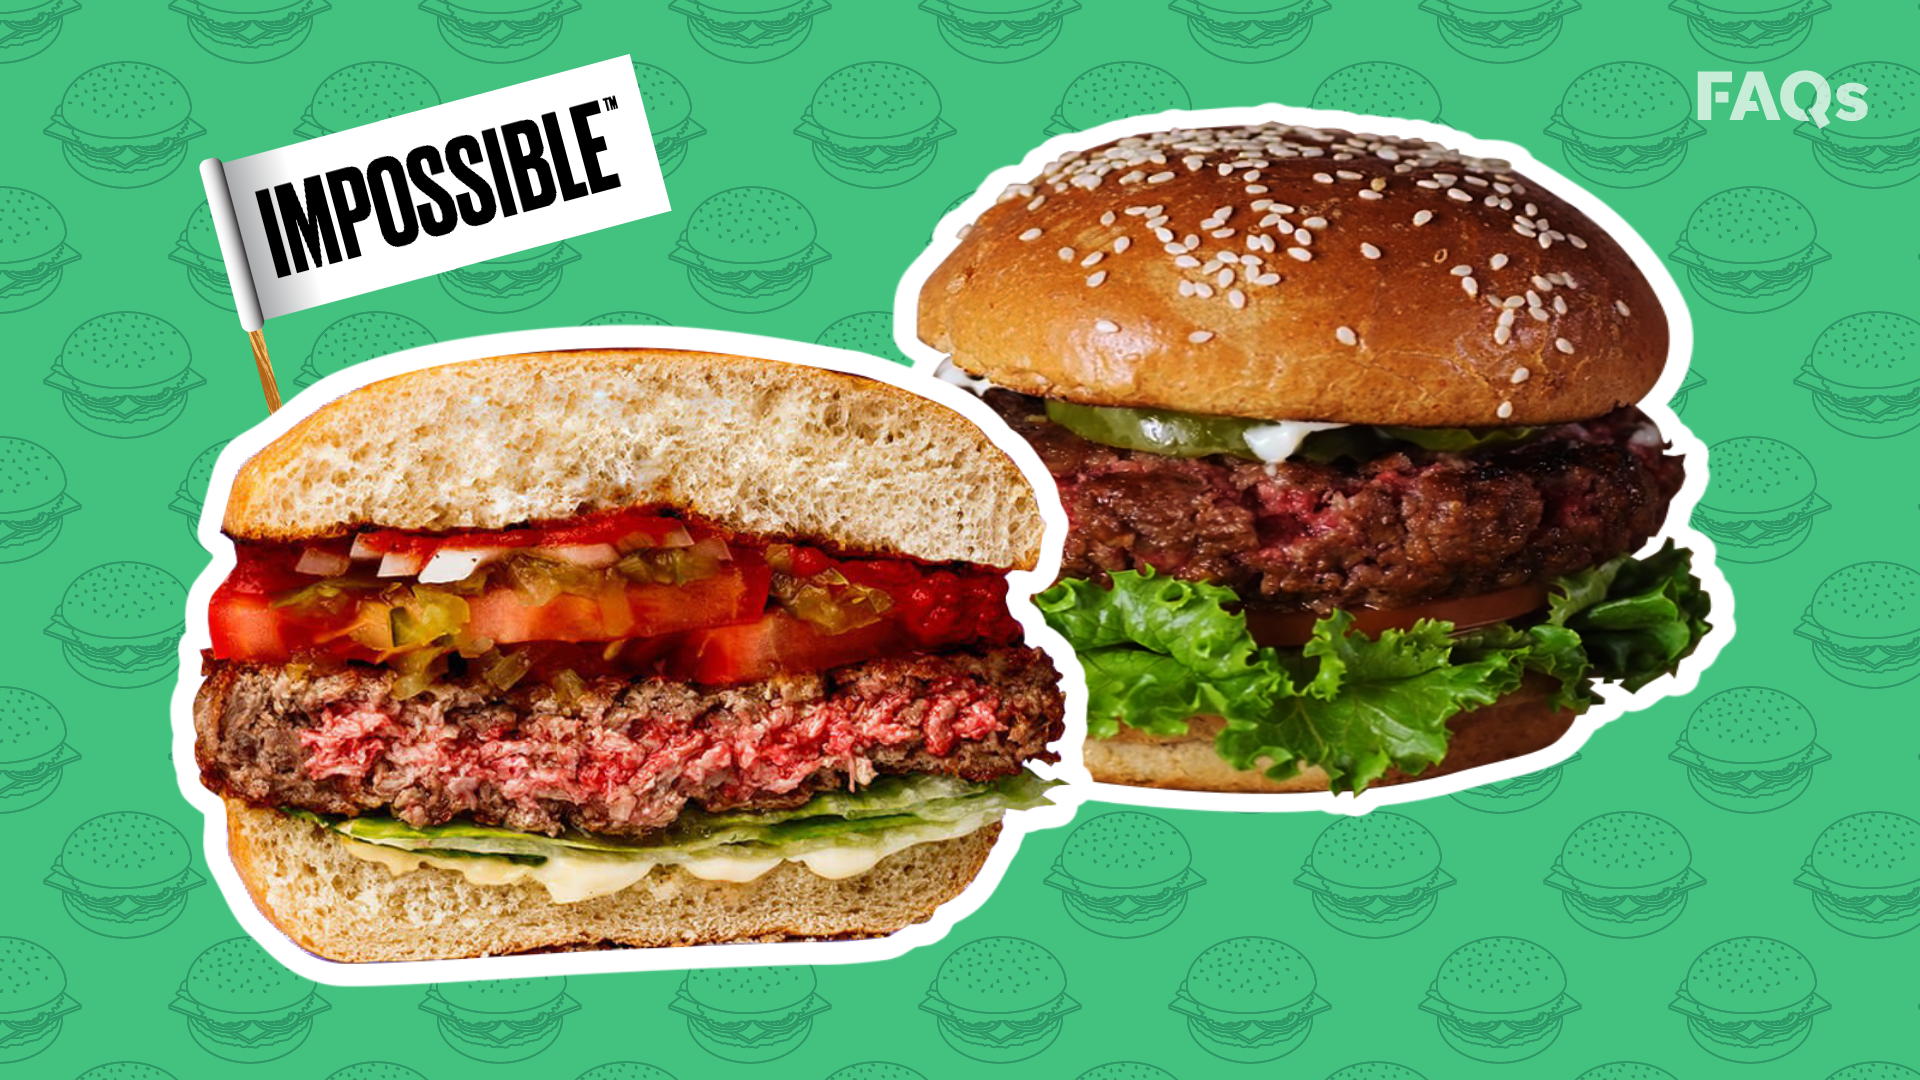 Impossible Whopper Meatless Burger.png